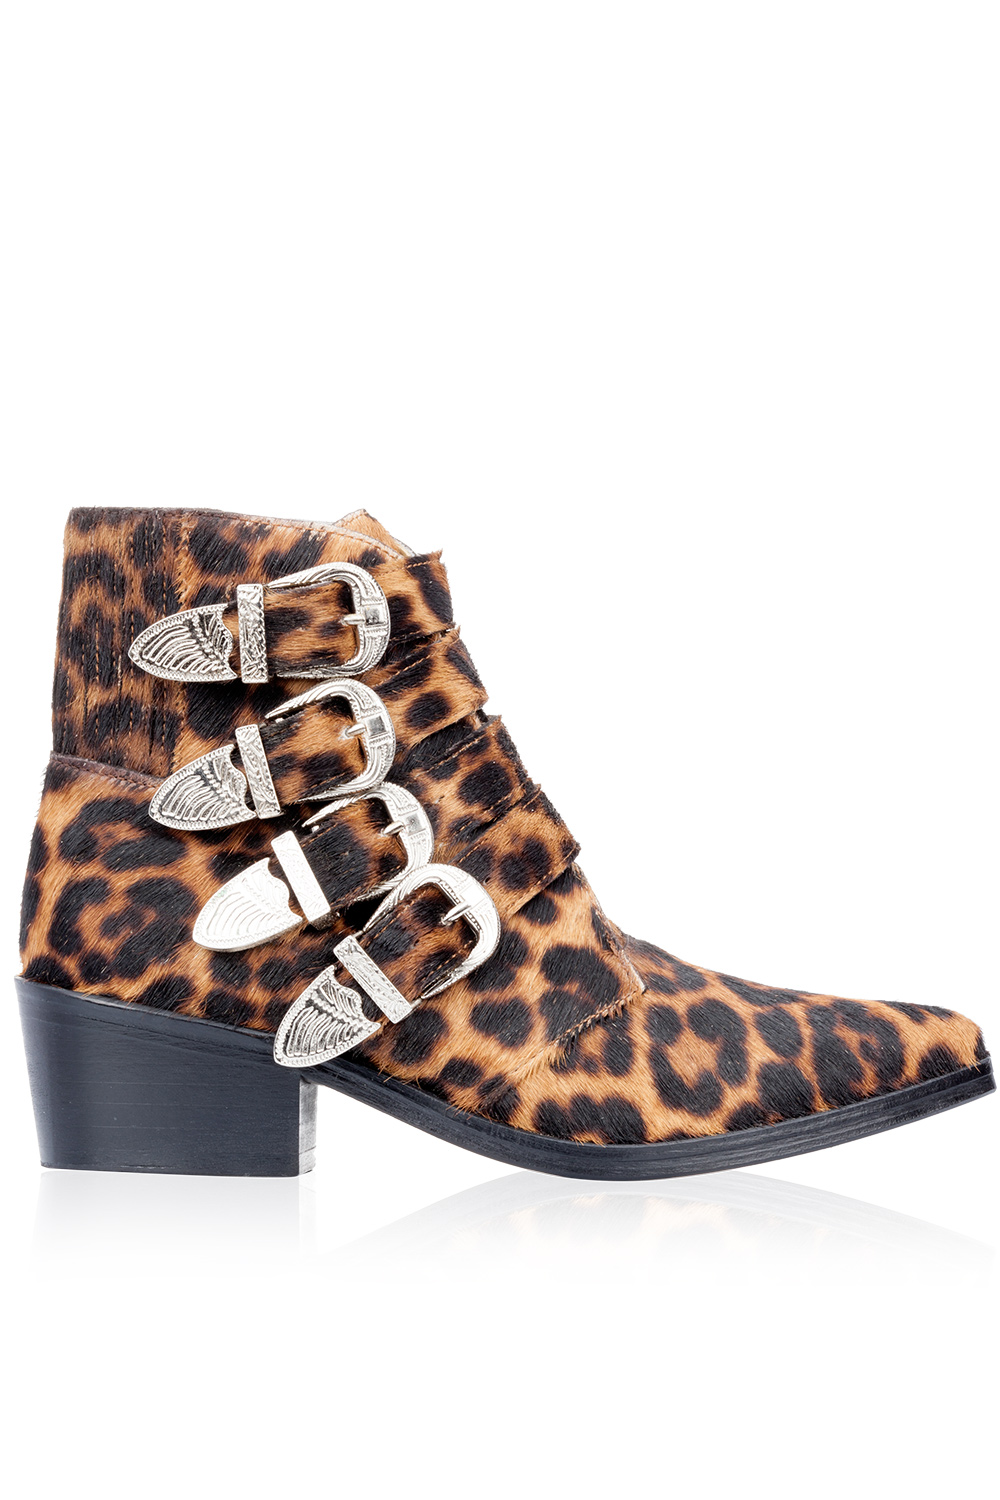 Toga Pulla Leopard Print Boots Multicolor 365ist